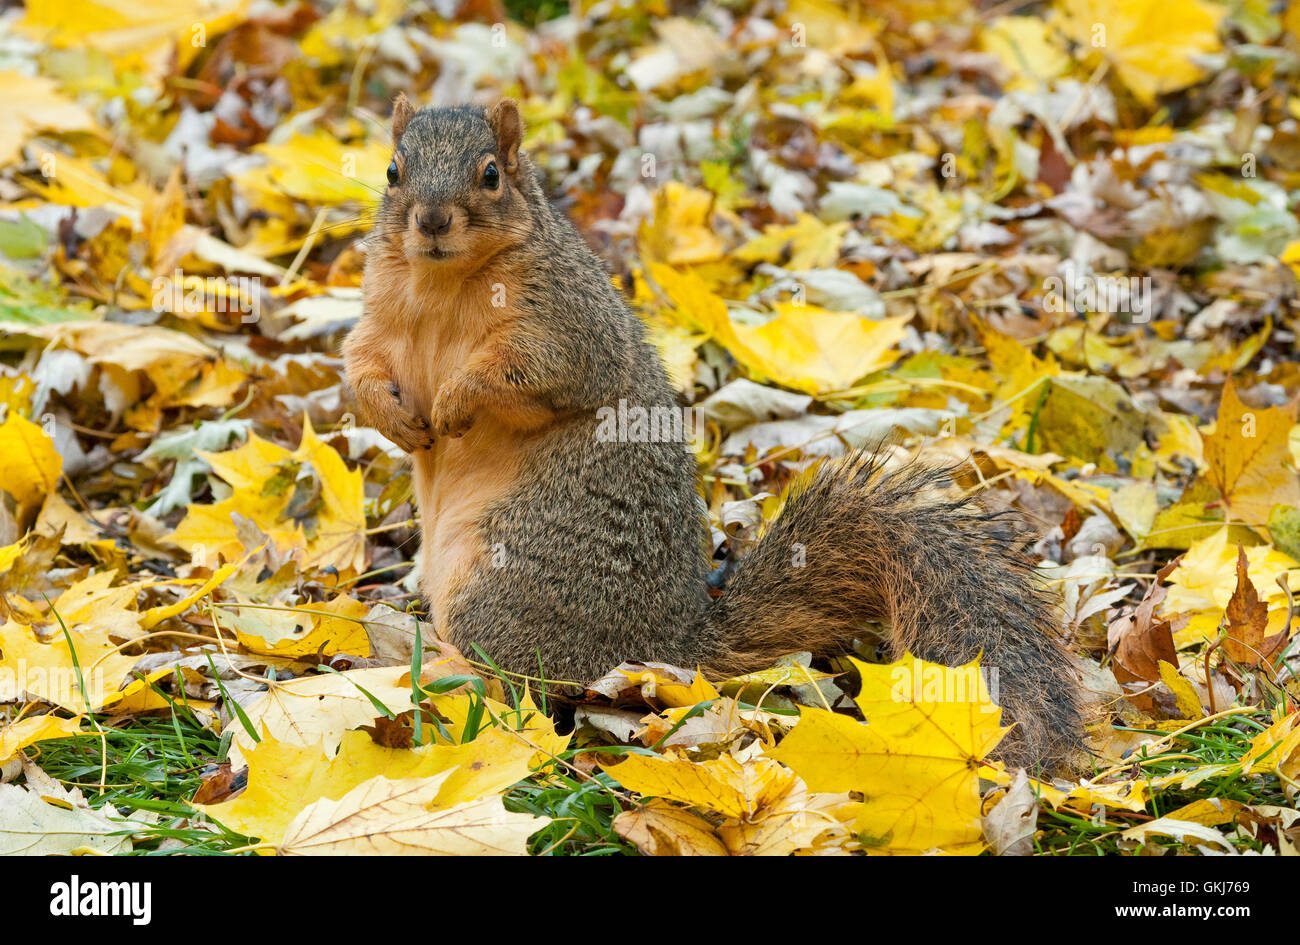 Eastern Fox Squirrel (Sciurus niger) on forest floor, searching for food, Autumn, E North America - Stock Image